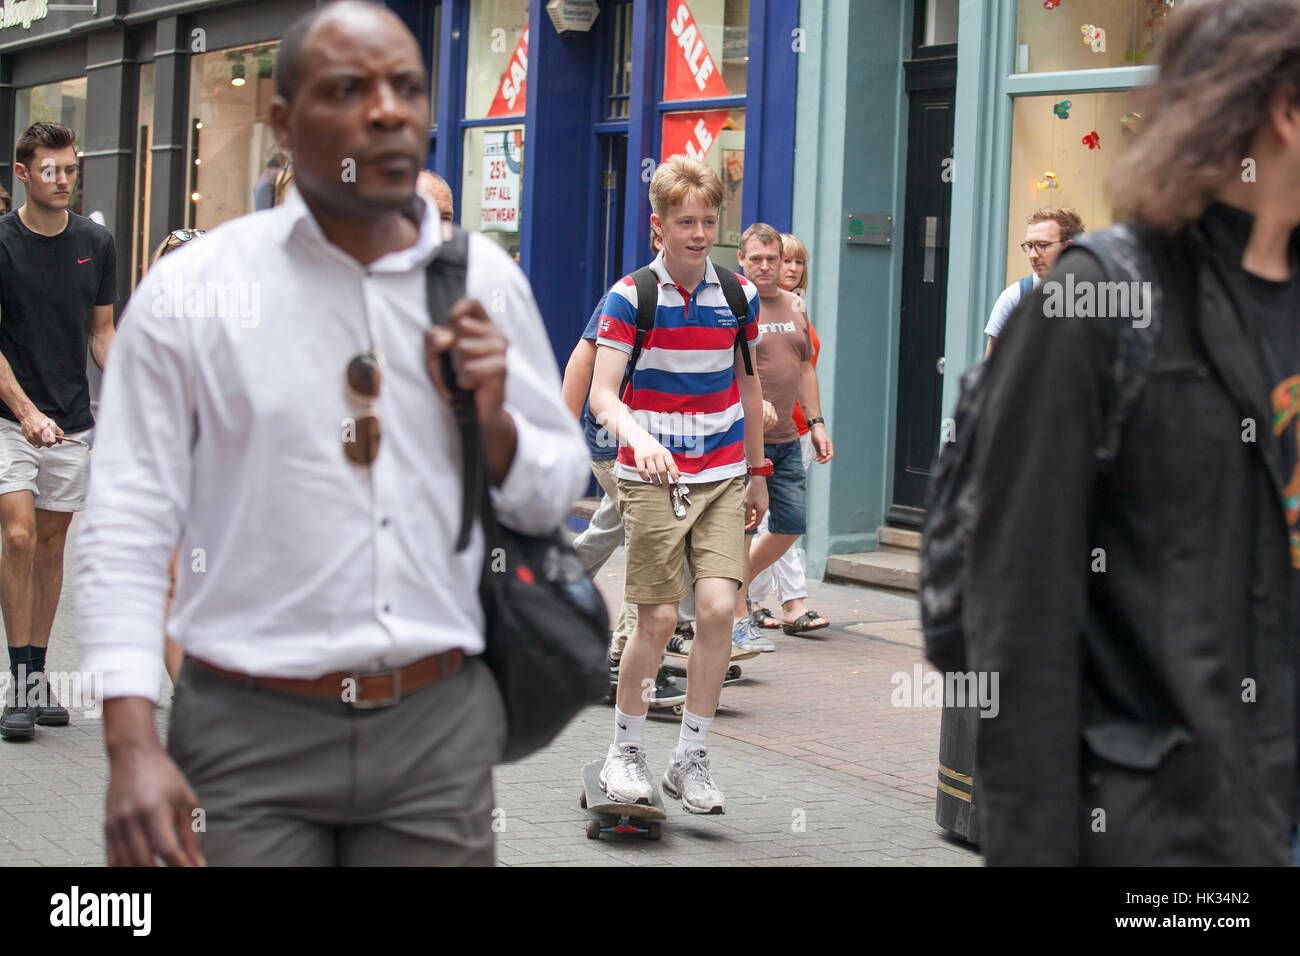 LONDON, ENGLAND - JULY 12, 2016 The boy in the striped T-shirt skating through the crowd in Carnaby street - Stock Image